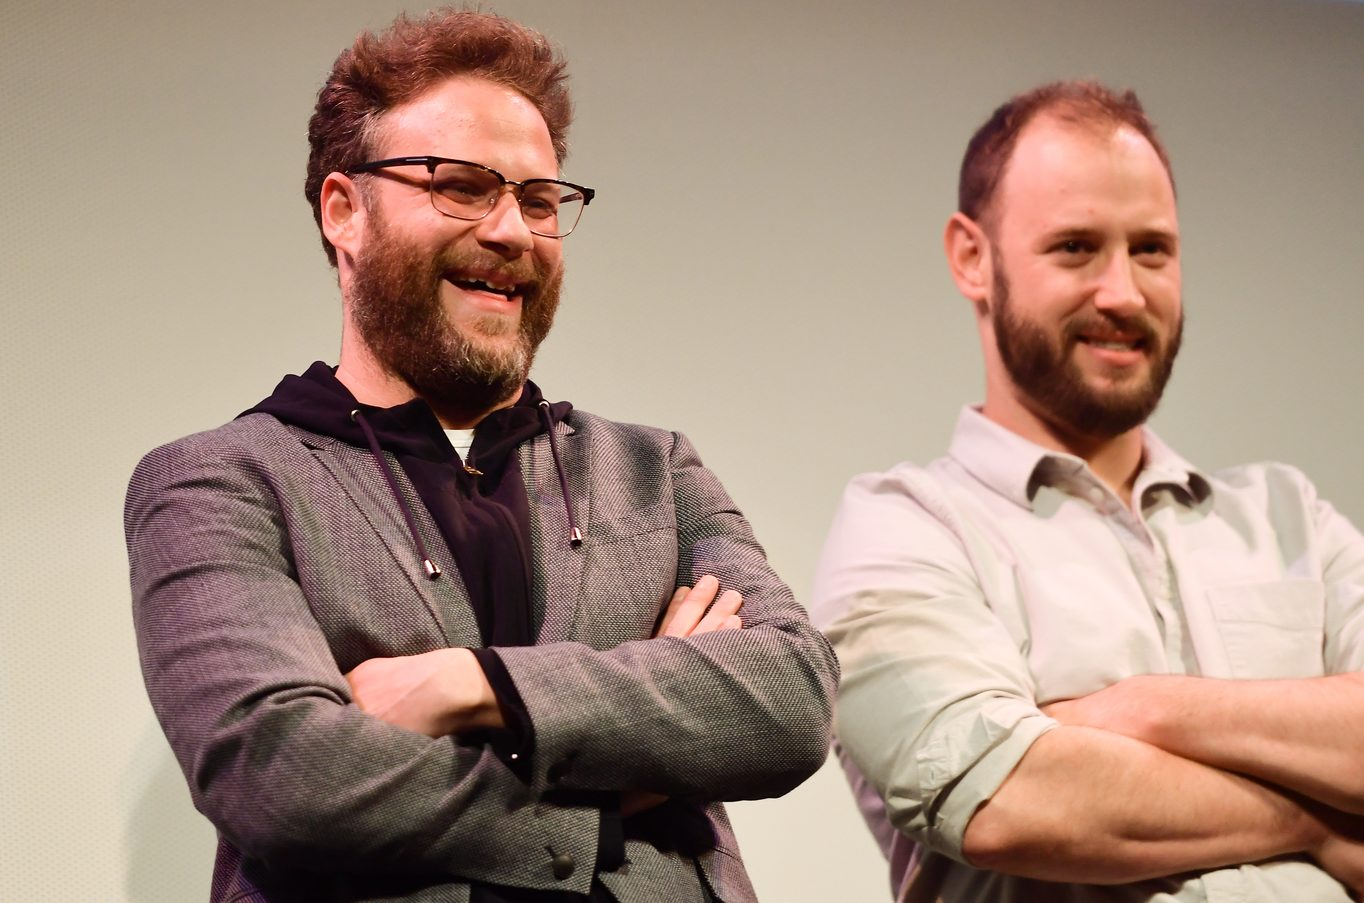 Seth Rogen and Evan Goldberg attend the Good Boys world premiere at the Paramount Theatre.